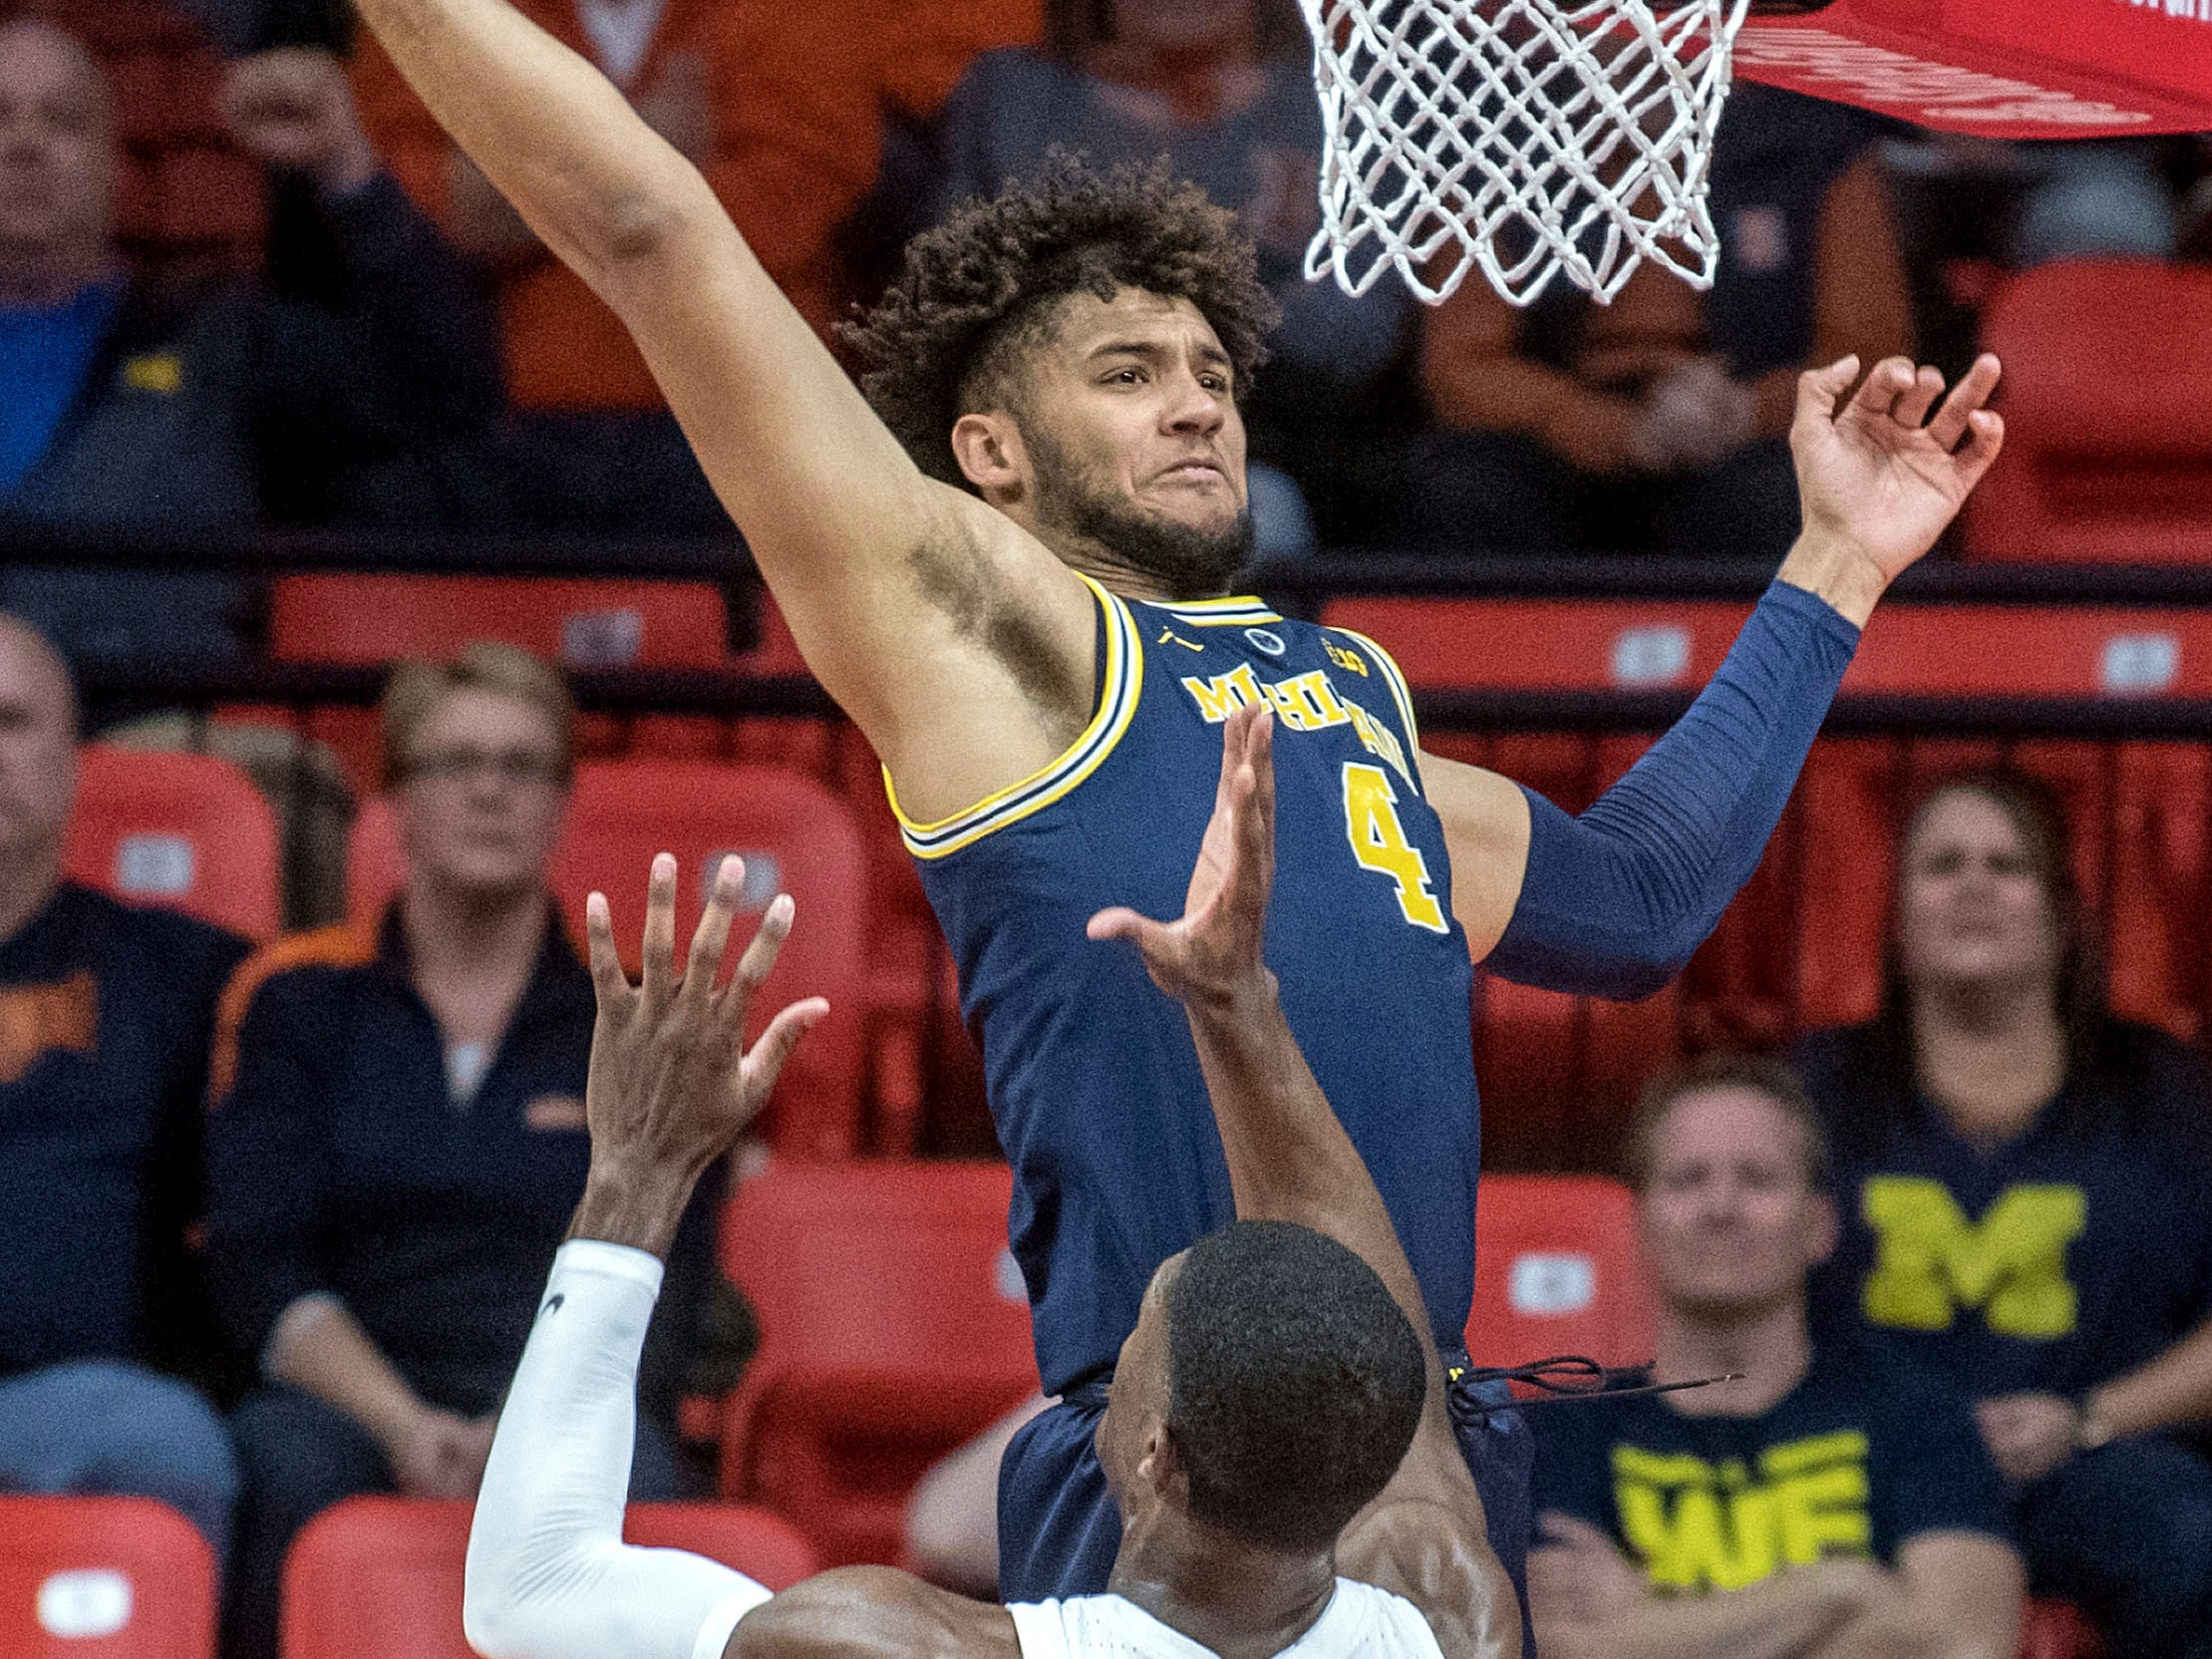 Michigan forward Isaiah Livers (4) goes up for a rebound over Illinois forward Kipper Nichols (2) during the first half of an NCAA college basketball game in Champaign, Ill., Wednesday, Jan. 10, 2019.